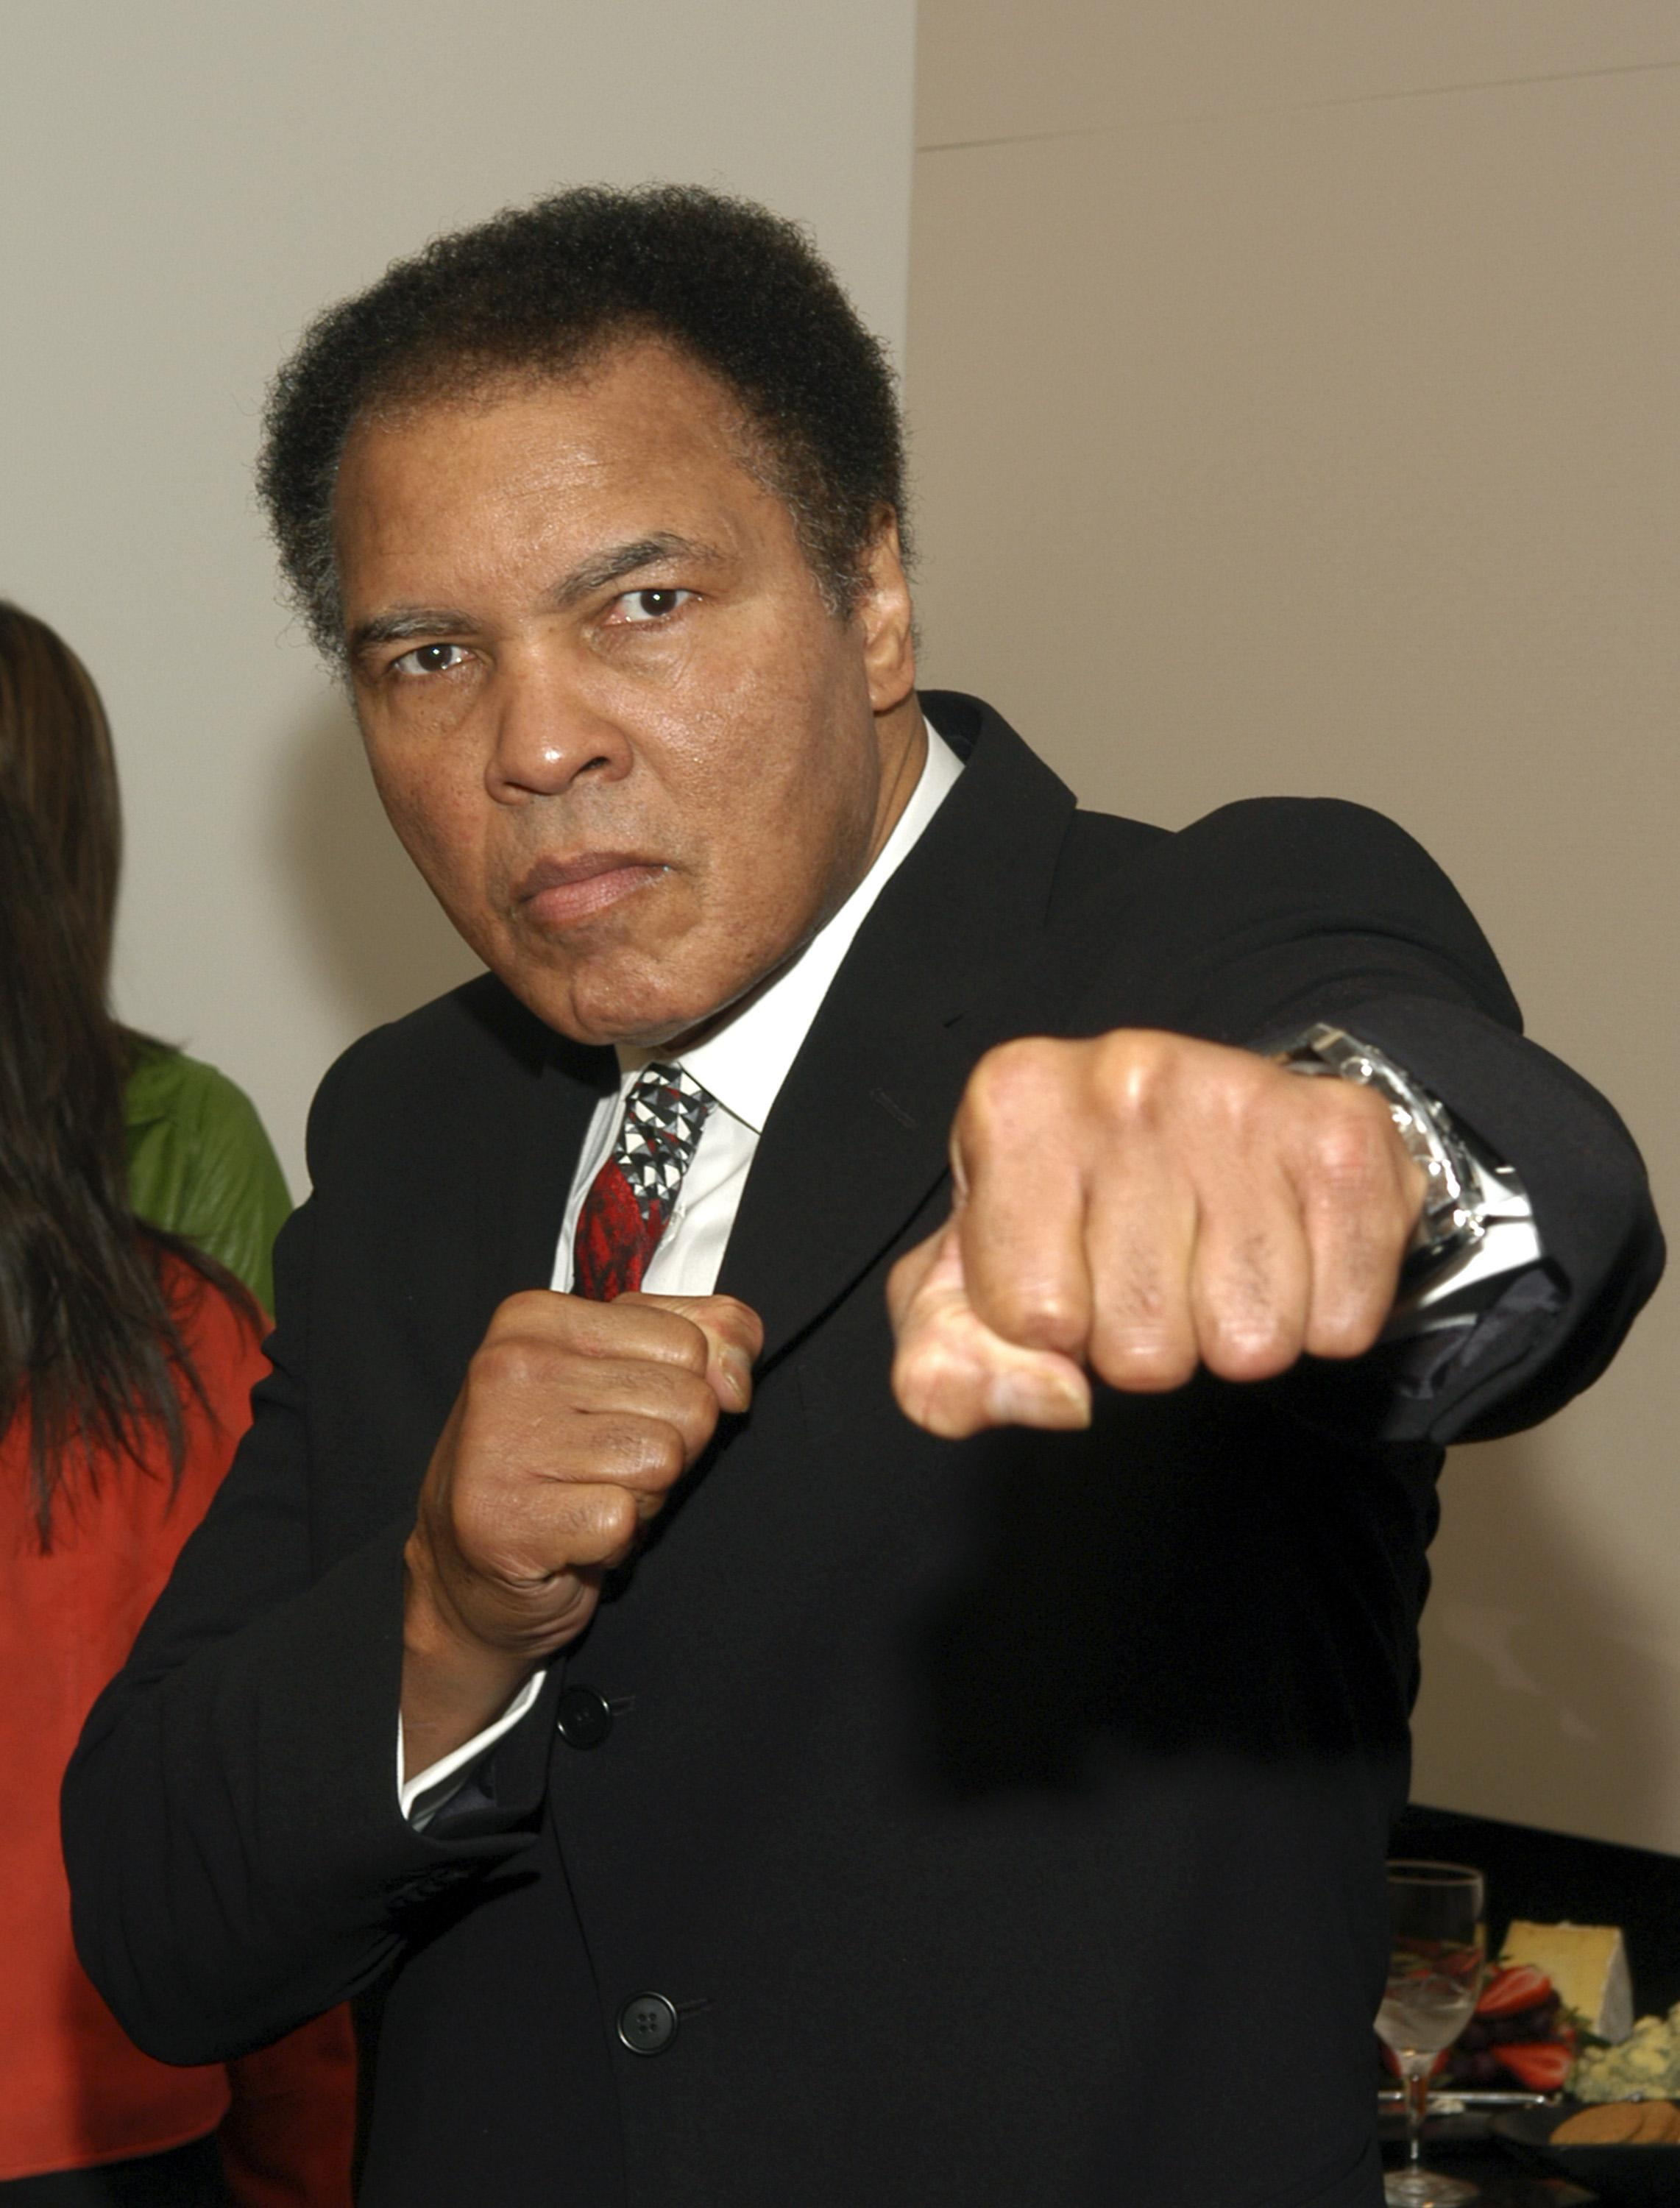 SunSport is of the opinion that Muhammad Ali has claims to be the greatest sportsperson of all time